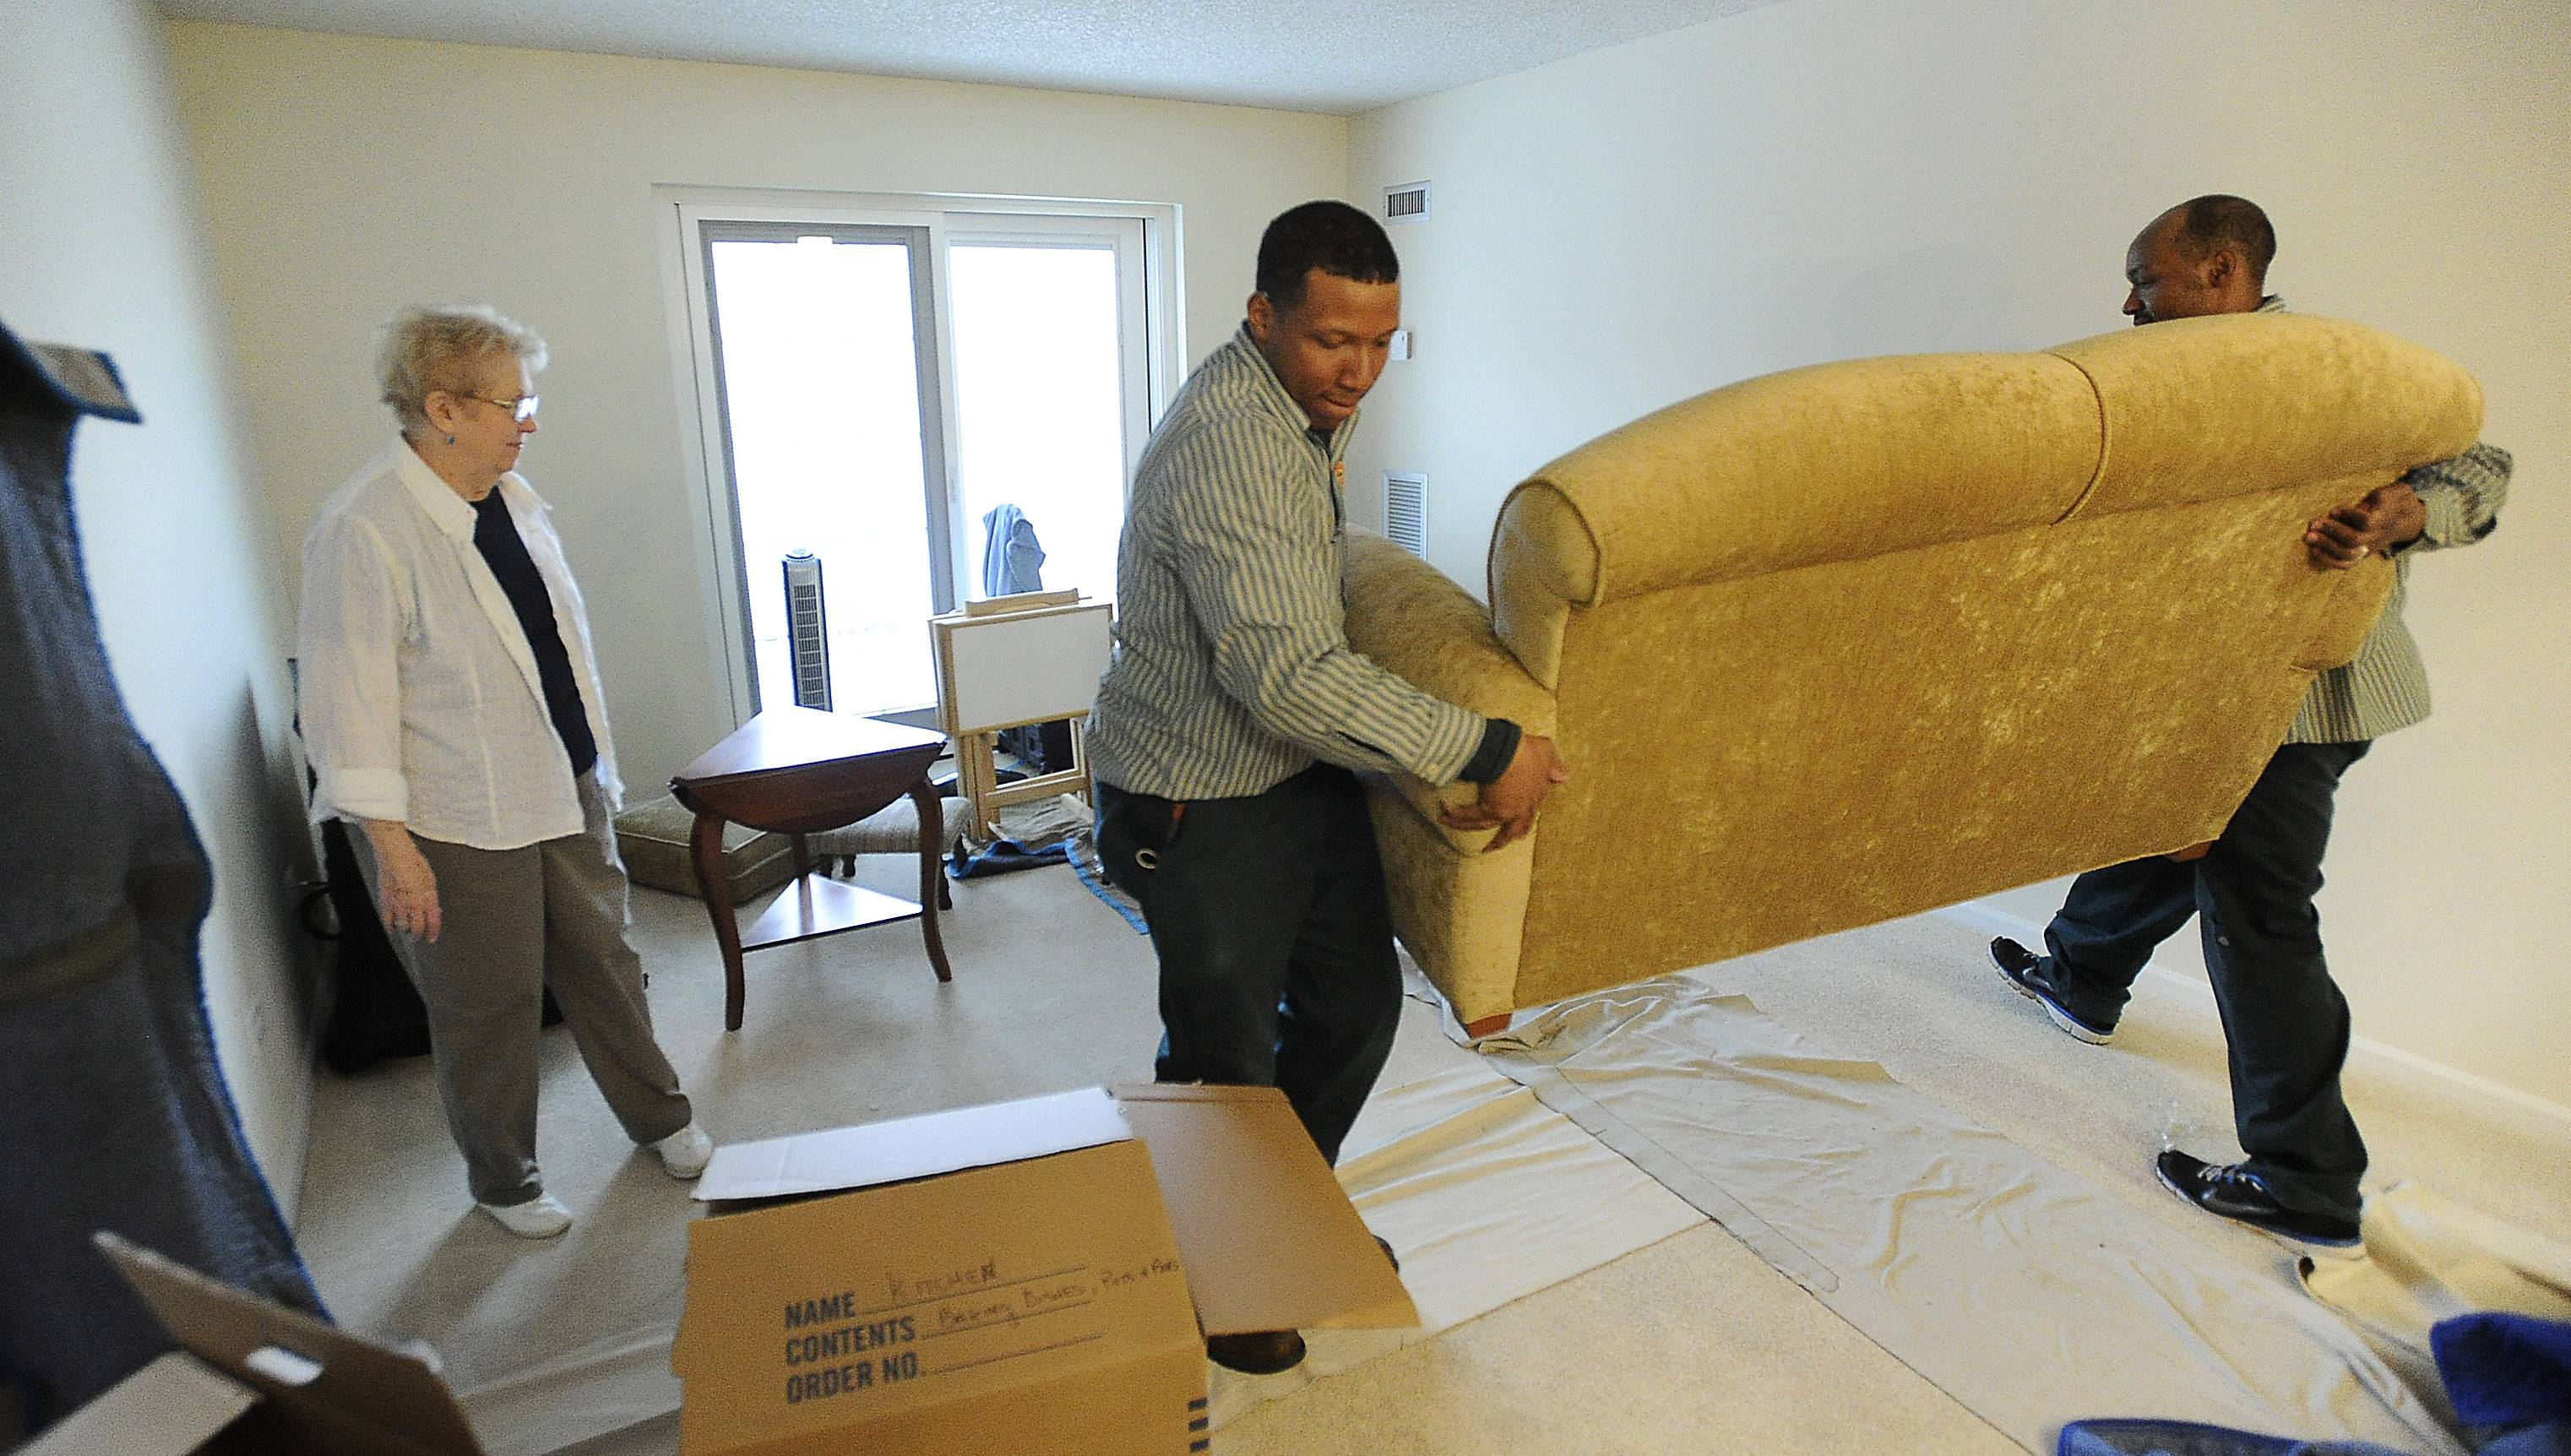 Martha Little, formerly of Des Plaines, moves into her new apartment at The Moorings, a senior community in Arlington Heights, earlier this year.